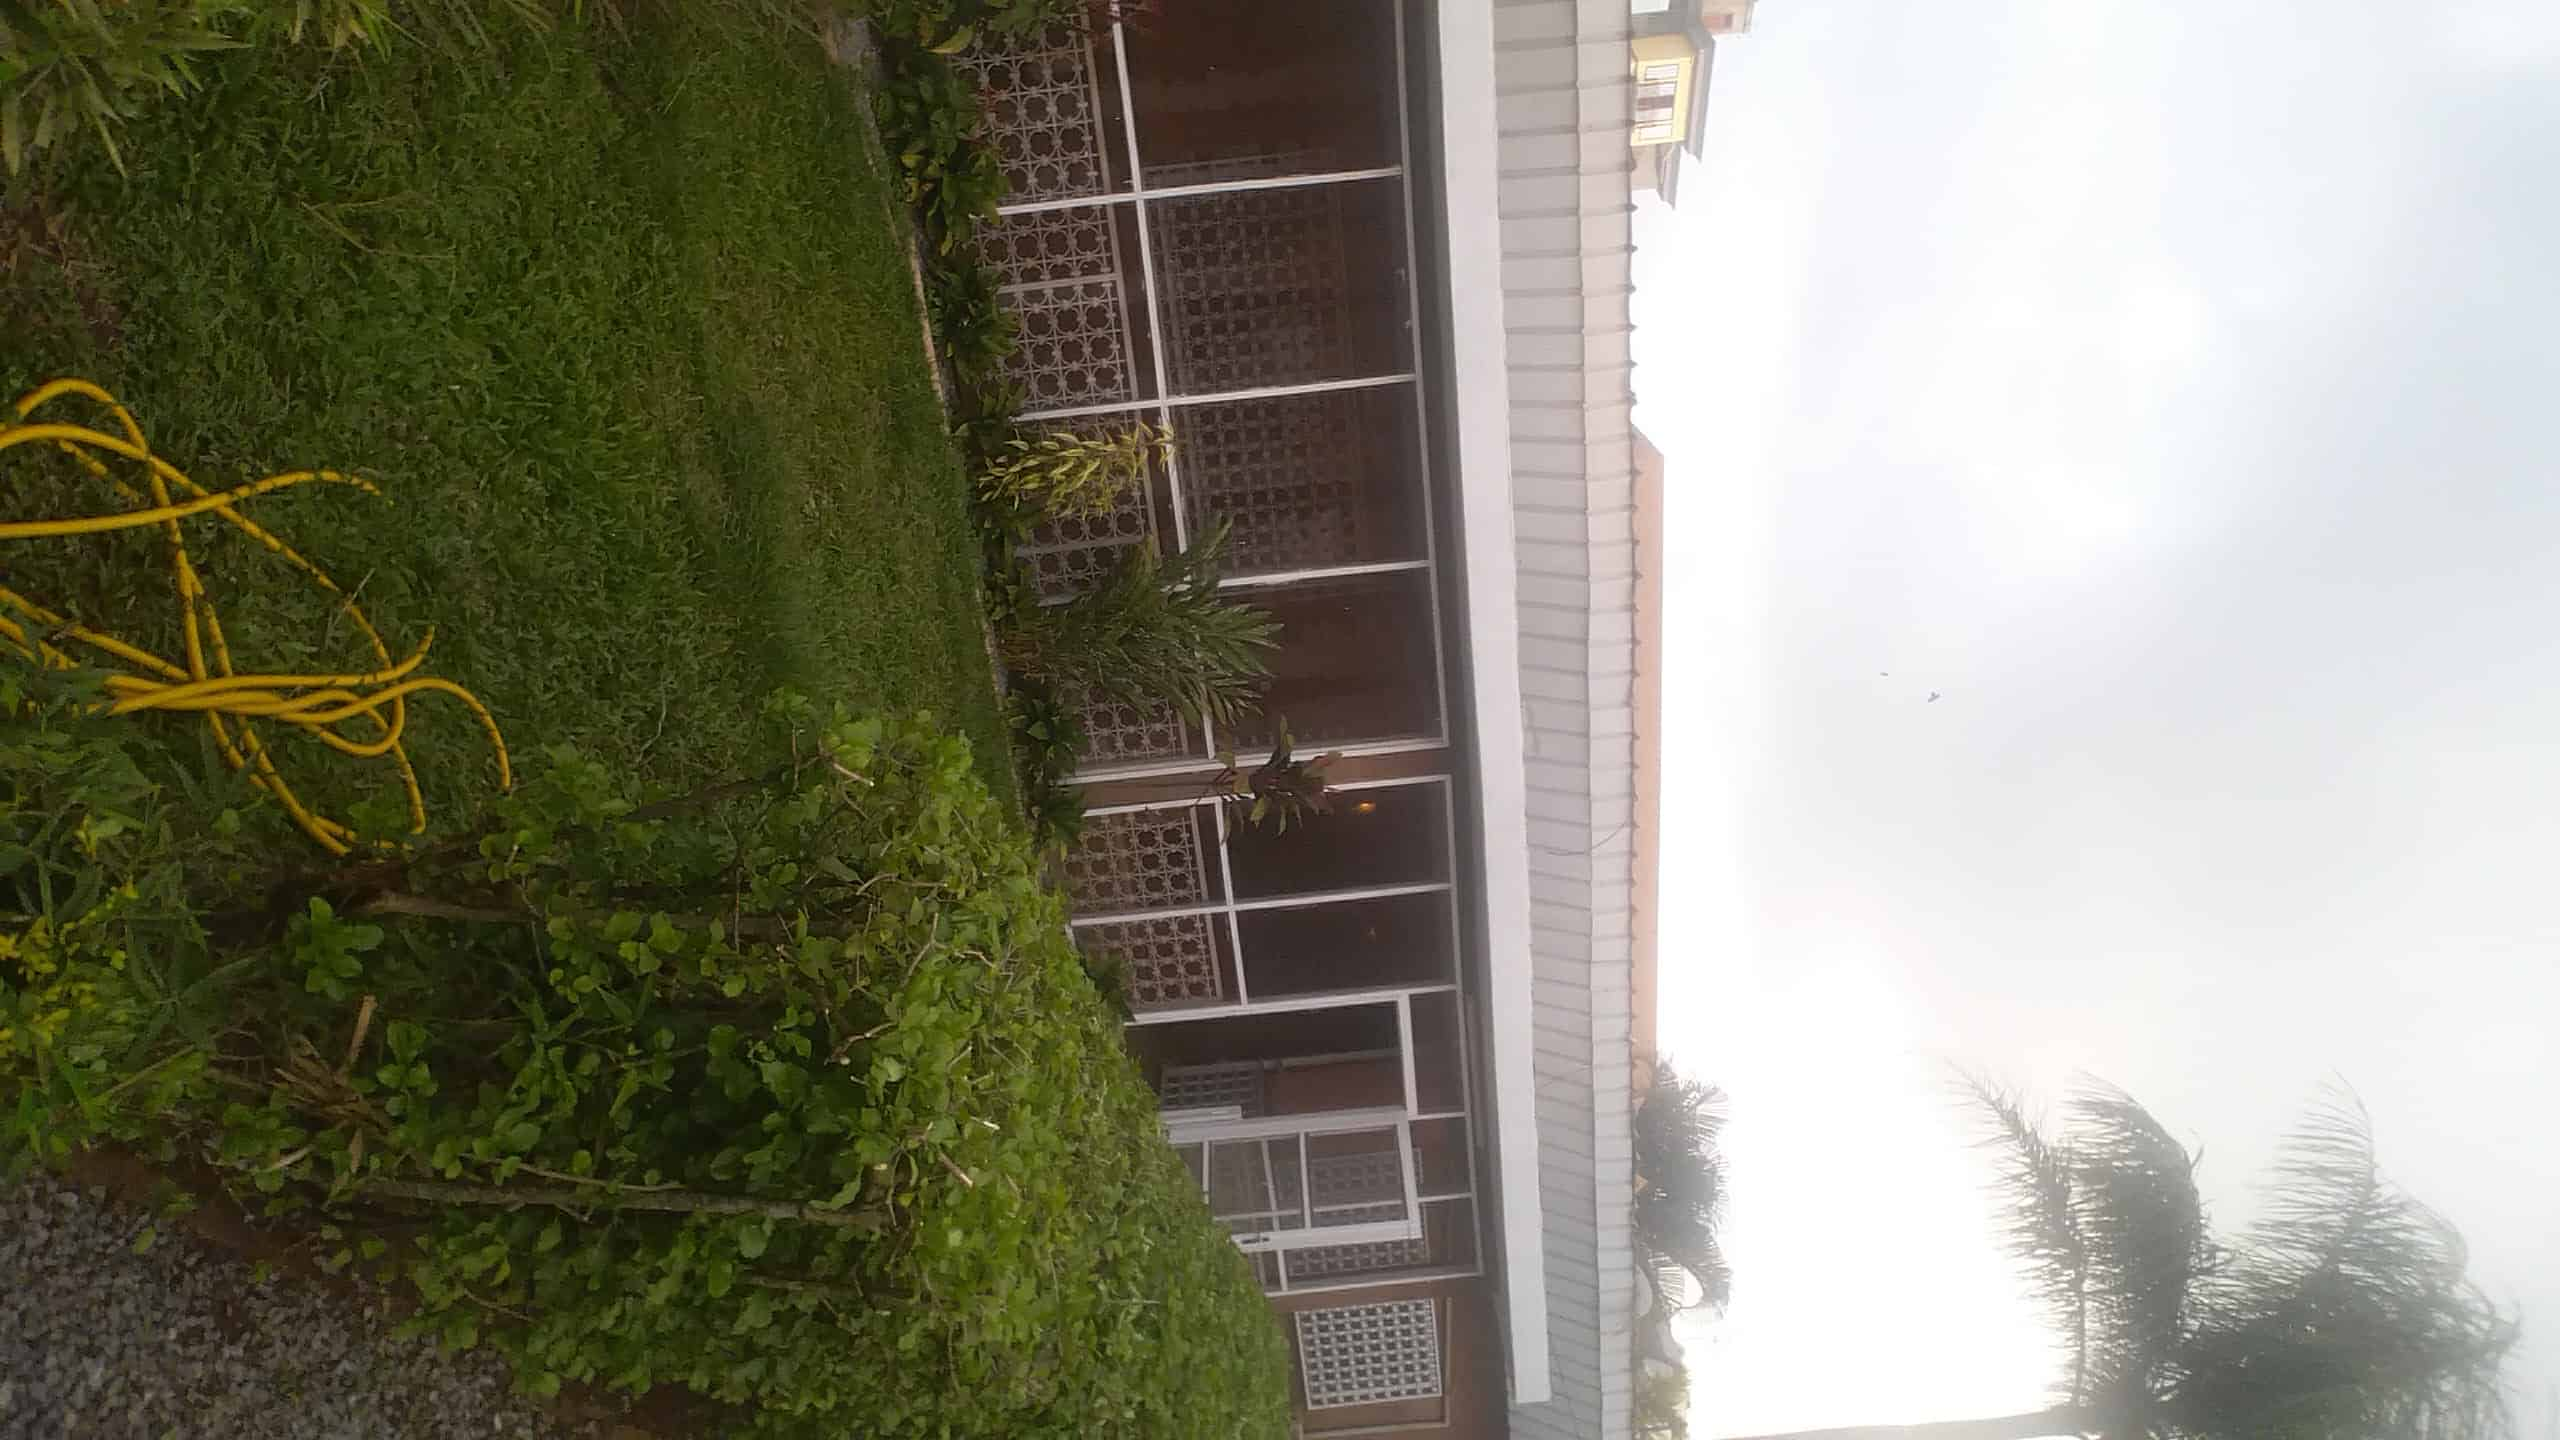 House (Villa) to rent - Yaoundé, Bastos, Mini prix bastos - 1 living room(s), 3 bedroom(s), 3 bathroom(s) - 850 000 FCFA / month